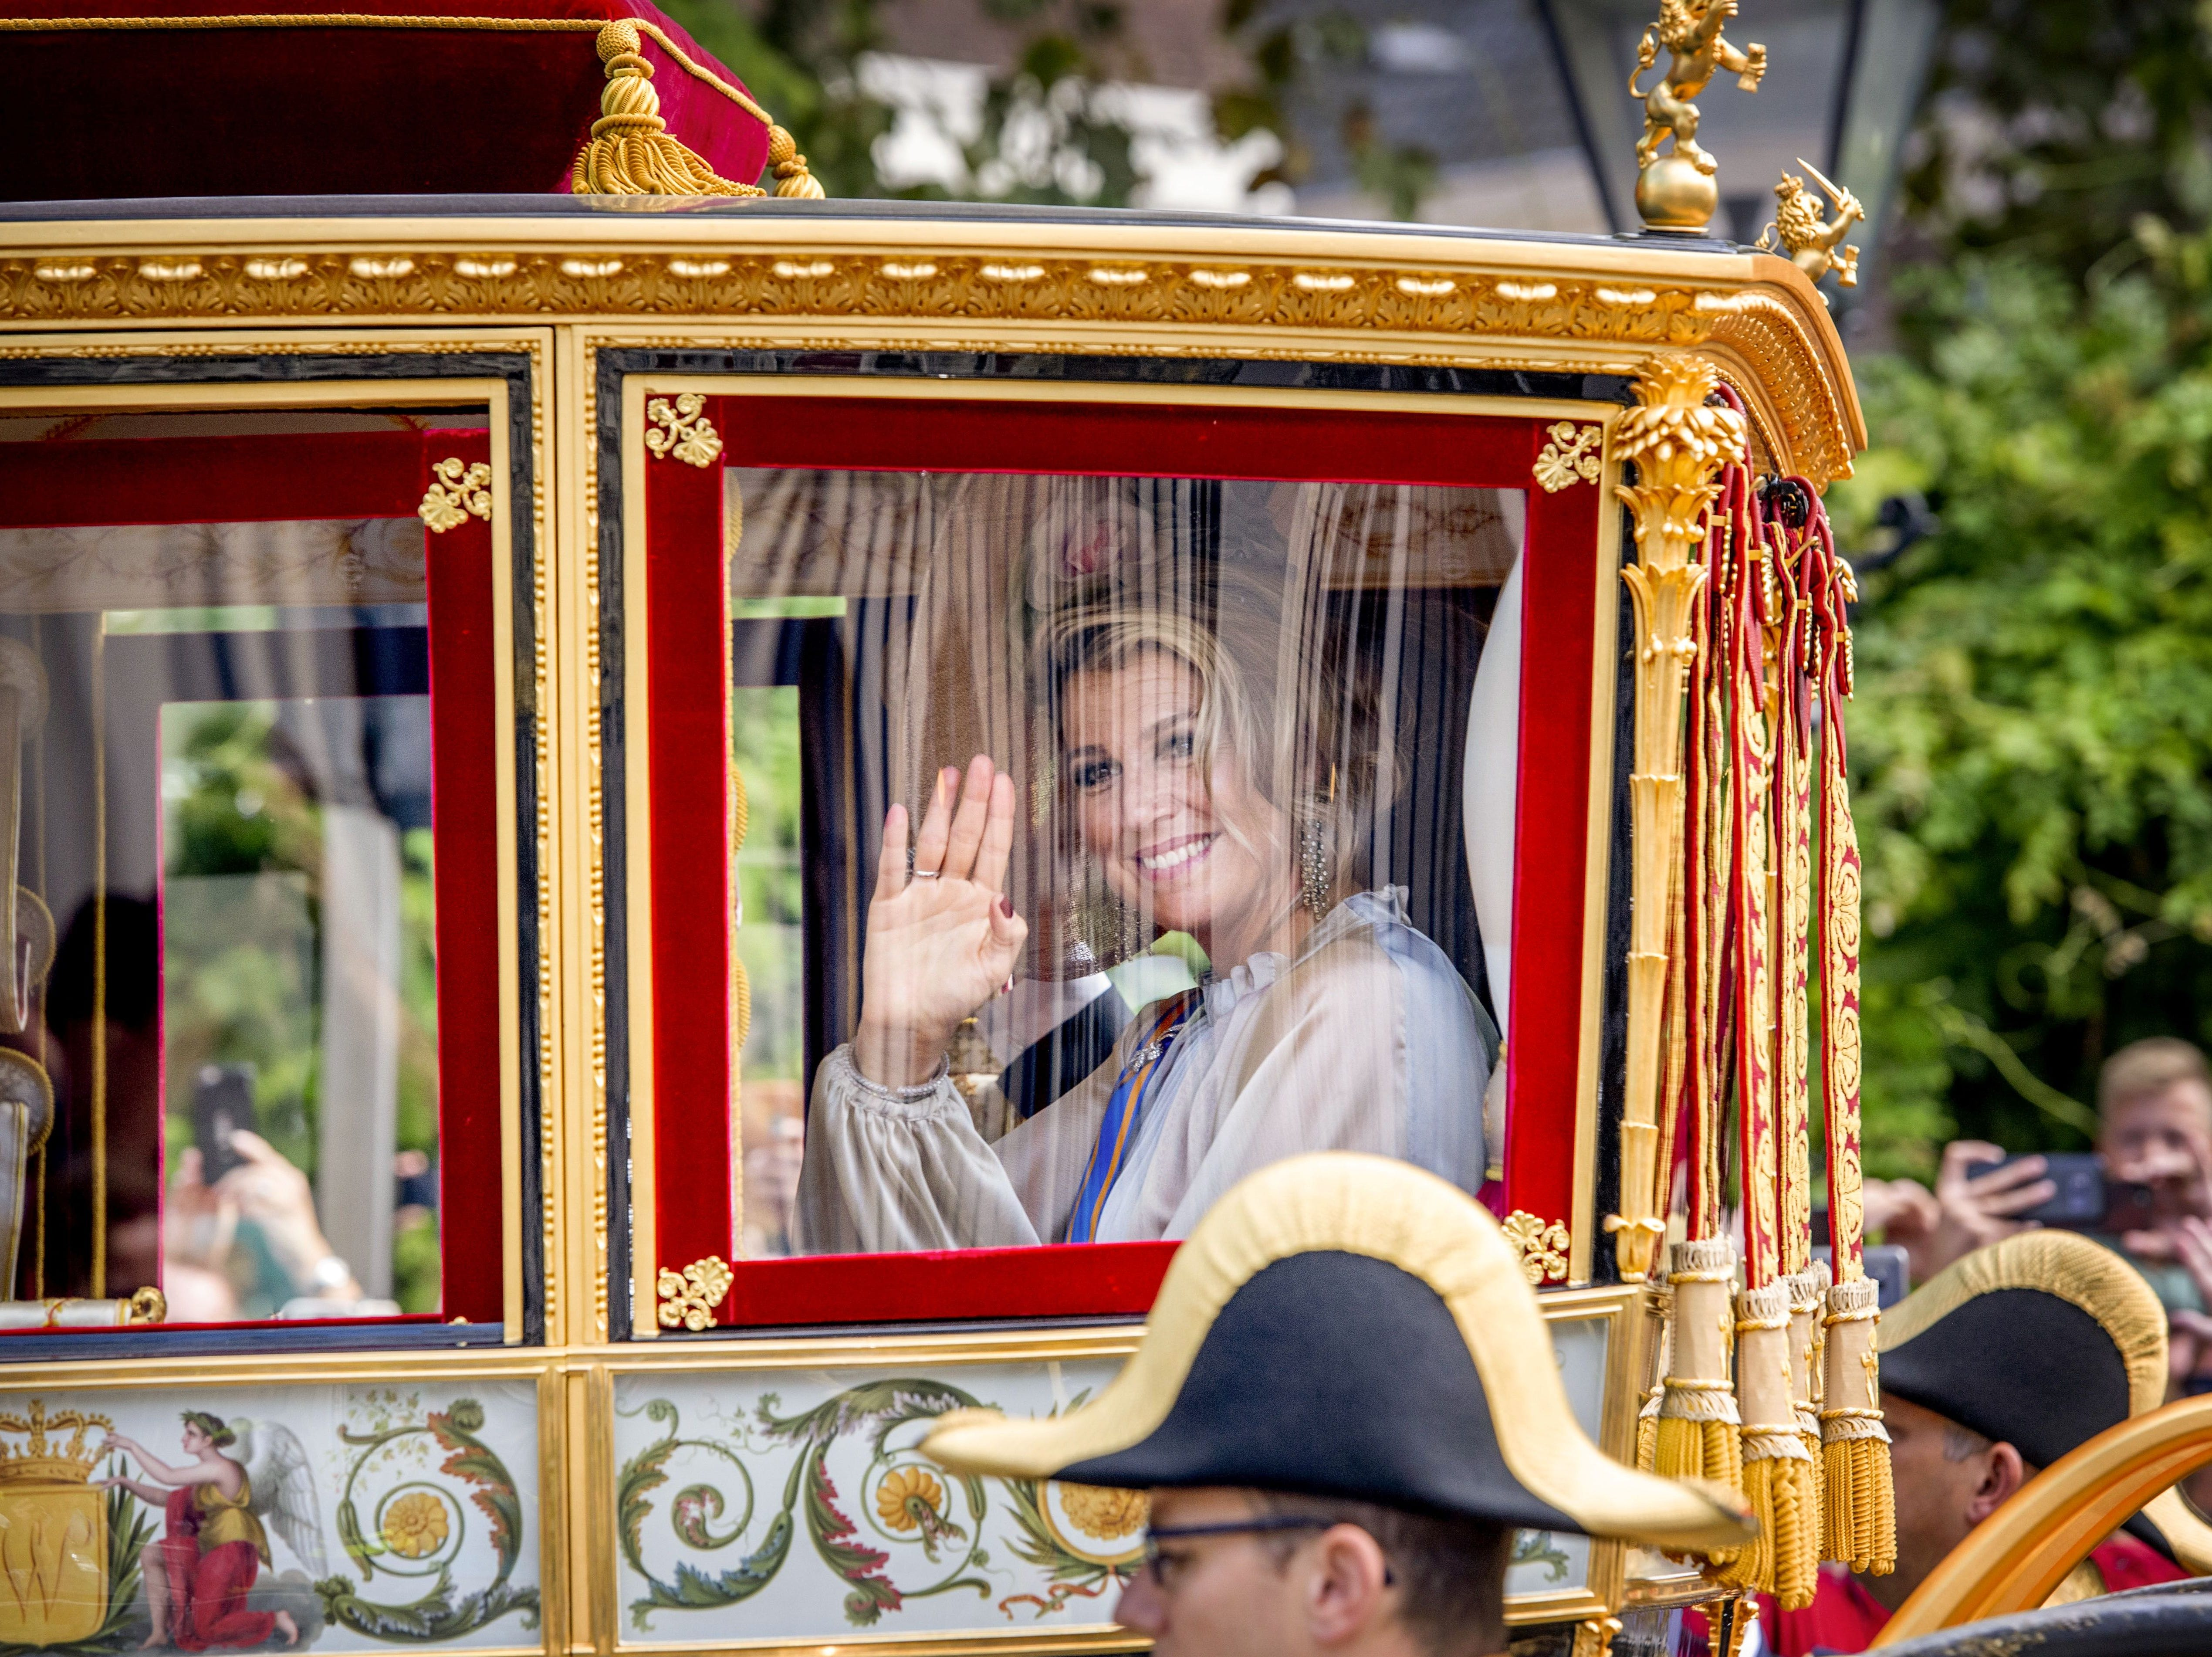 Dutch Queen Maxima waves as she arrive at the Ridderzaal in The Hague, on September 18, 2018. - Prince's Day is the traditional opening of the Dutch parliamentary year, when the King delivers the 'Speech from the Throne' in the Ridderzaal (Knights' Hall).